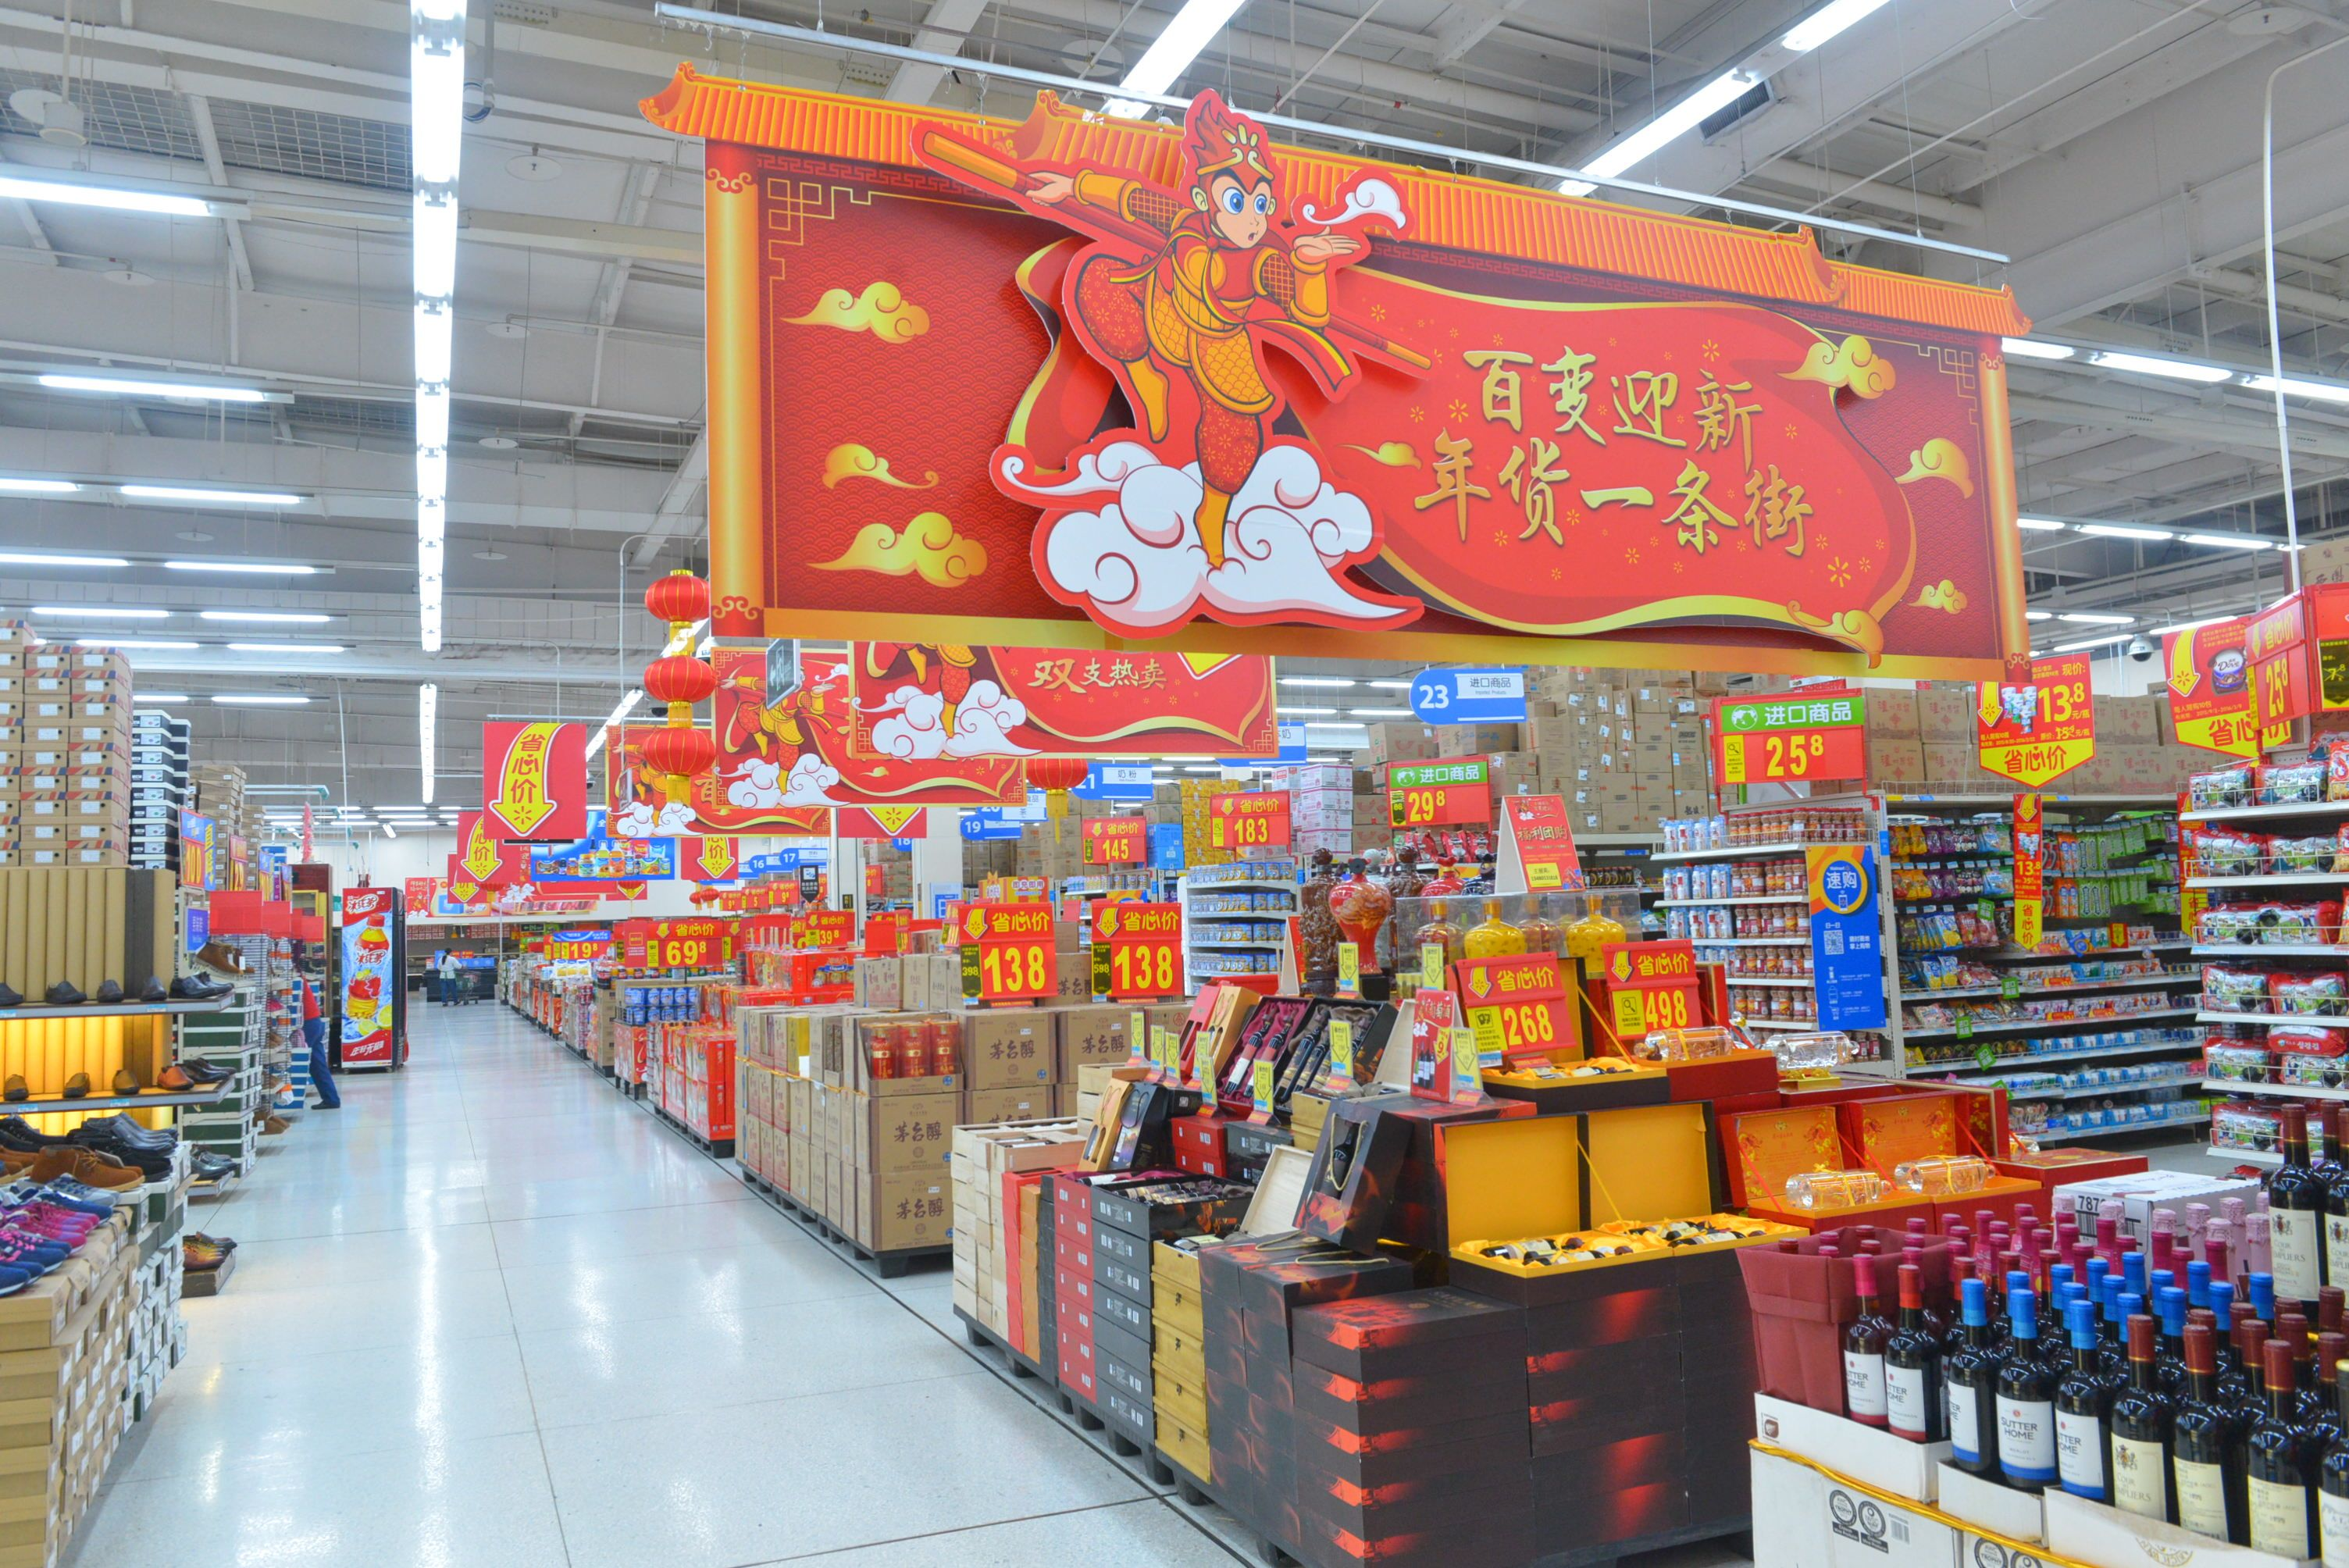 The center aisle of a Walmart China store